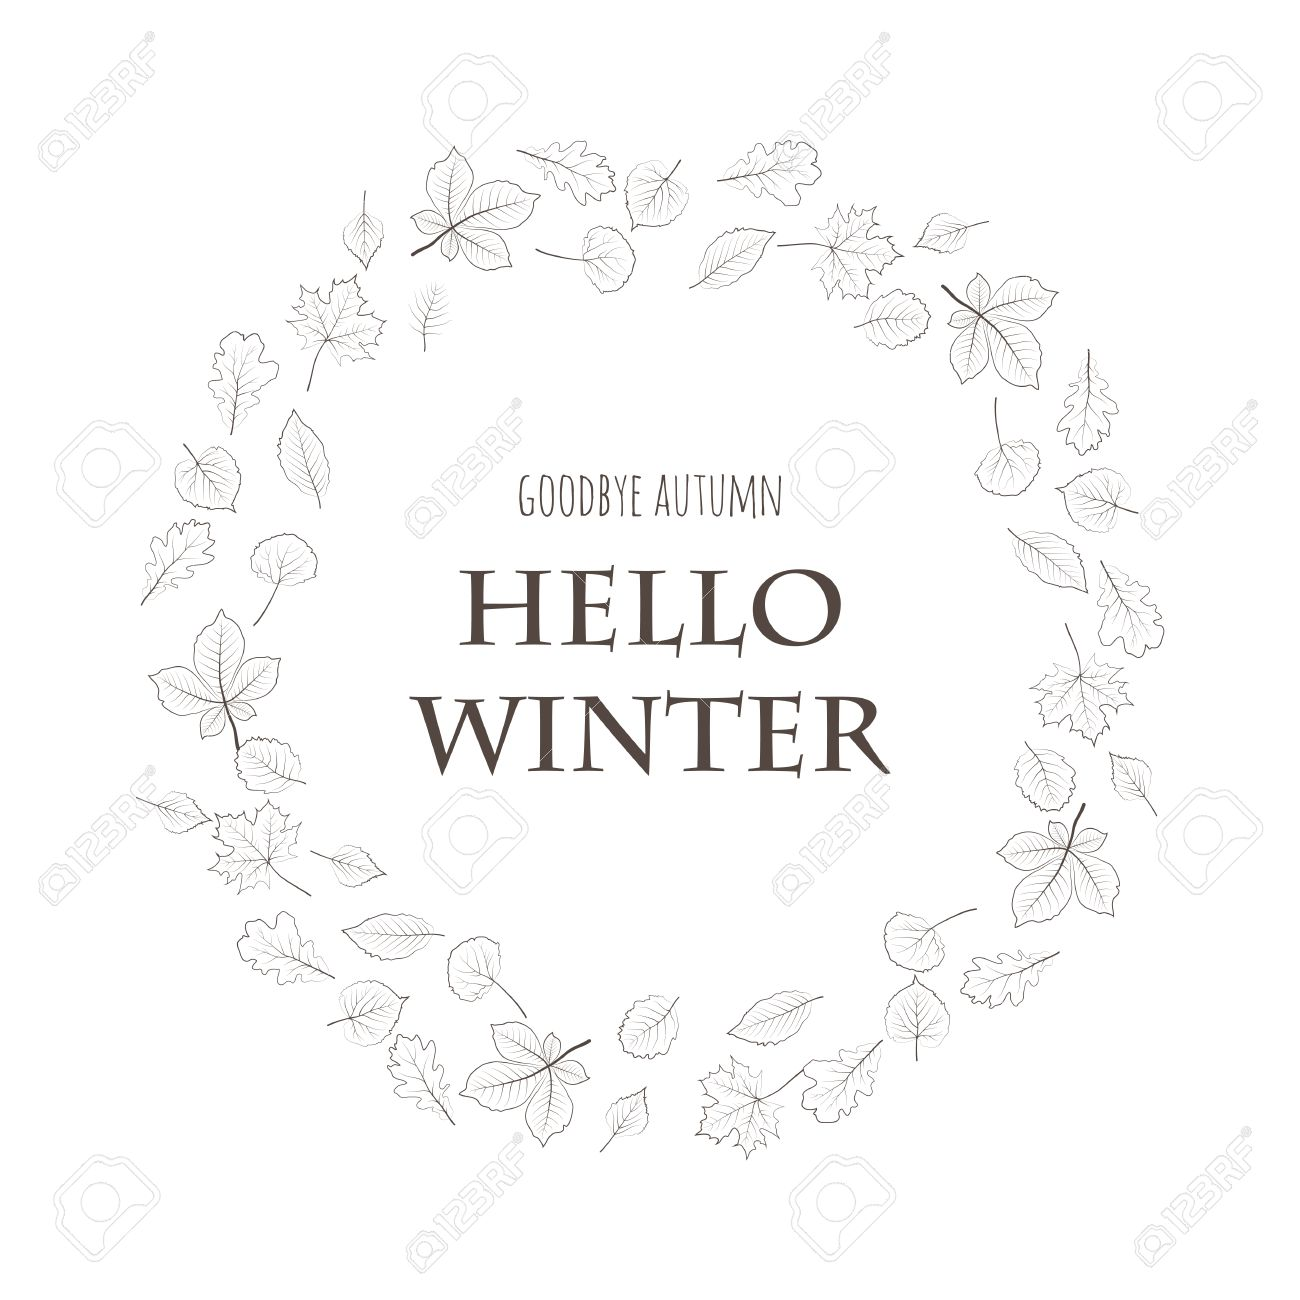 Goodbye autumn hello winter forest tree leaves lettering card goodbye autumn hello winter forest tree leaves lettering card design white background season kristyandbryce Image collections